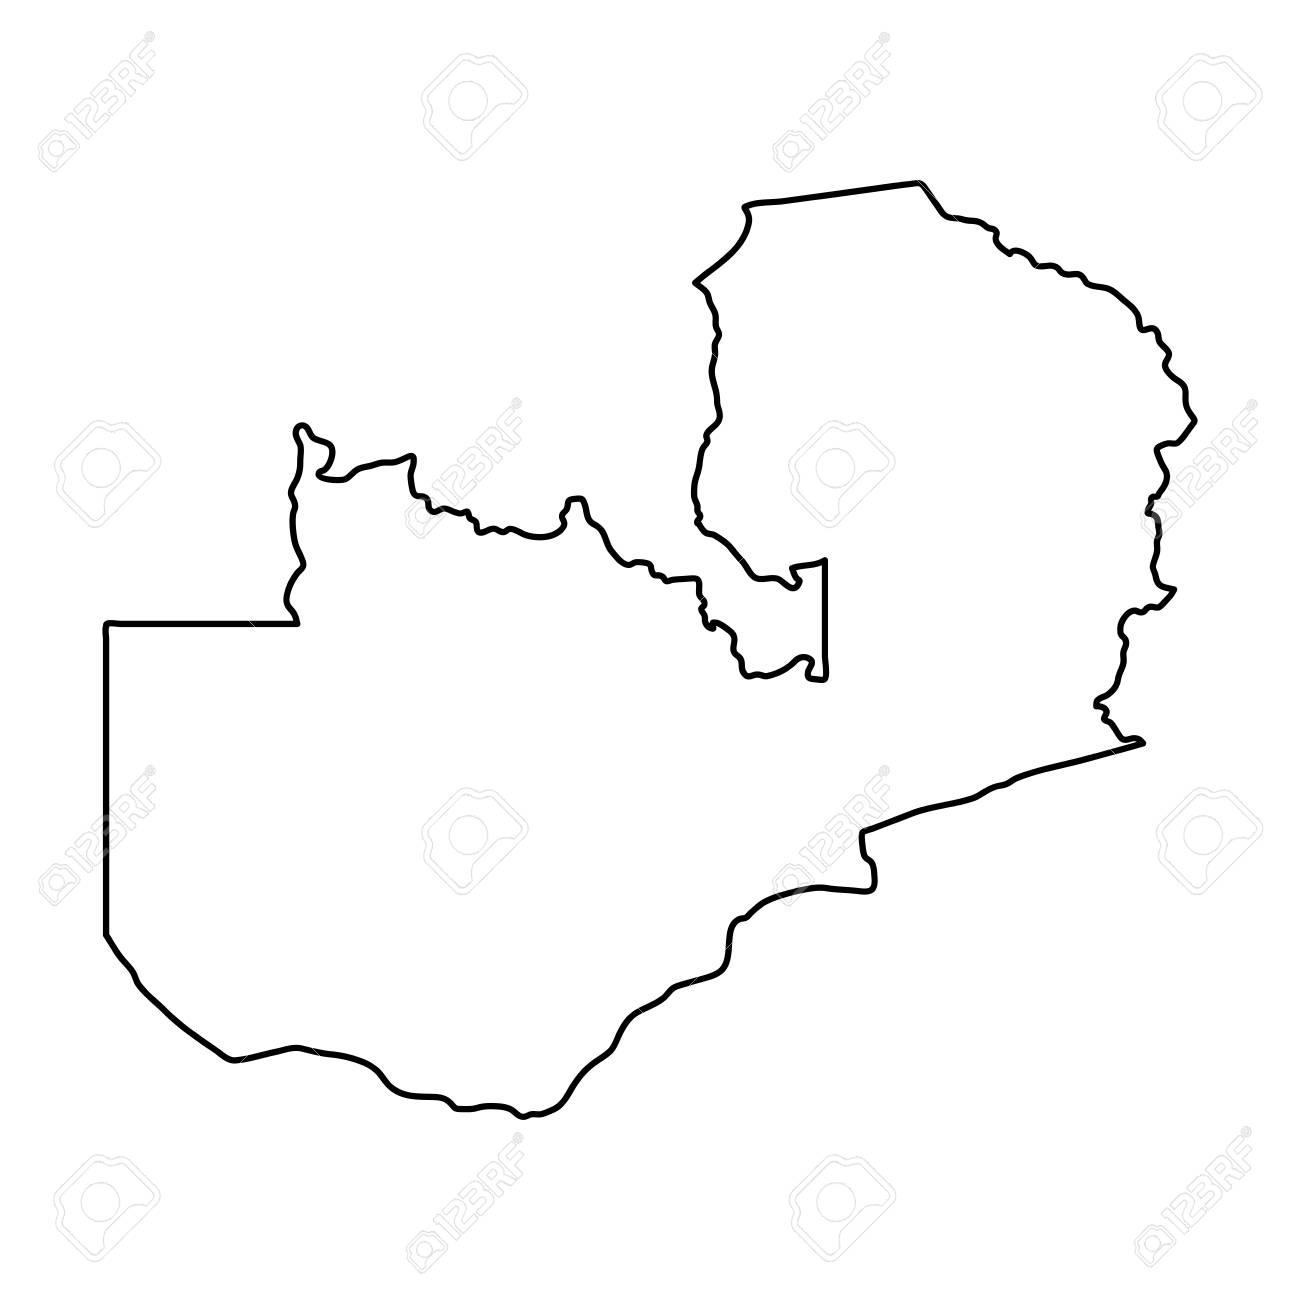 Zambian Map Vector.Zambia Map Of Black Contour Curves On White Background Of Vector